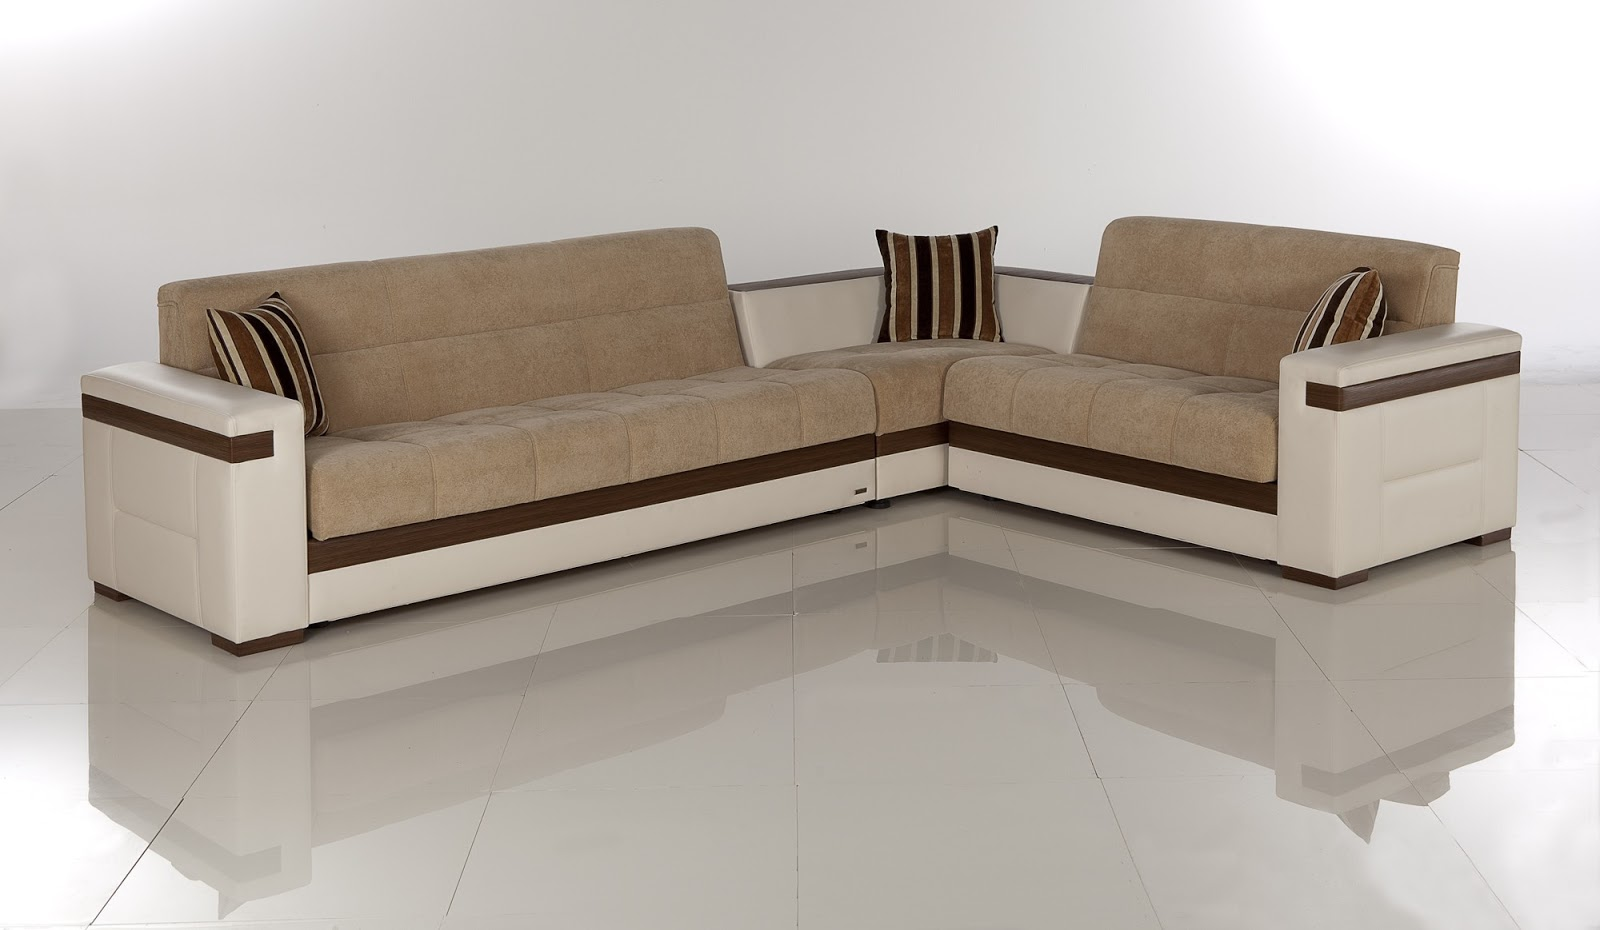 Sofa designs ideas home and design for Sofa interior design